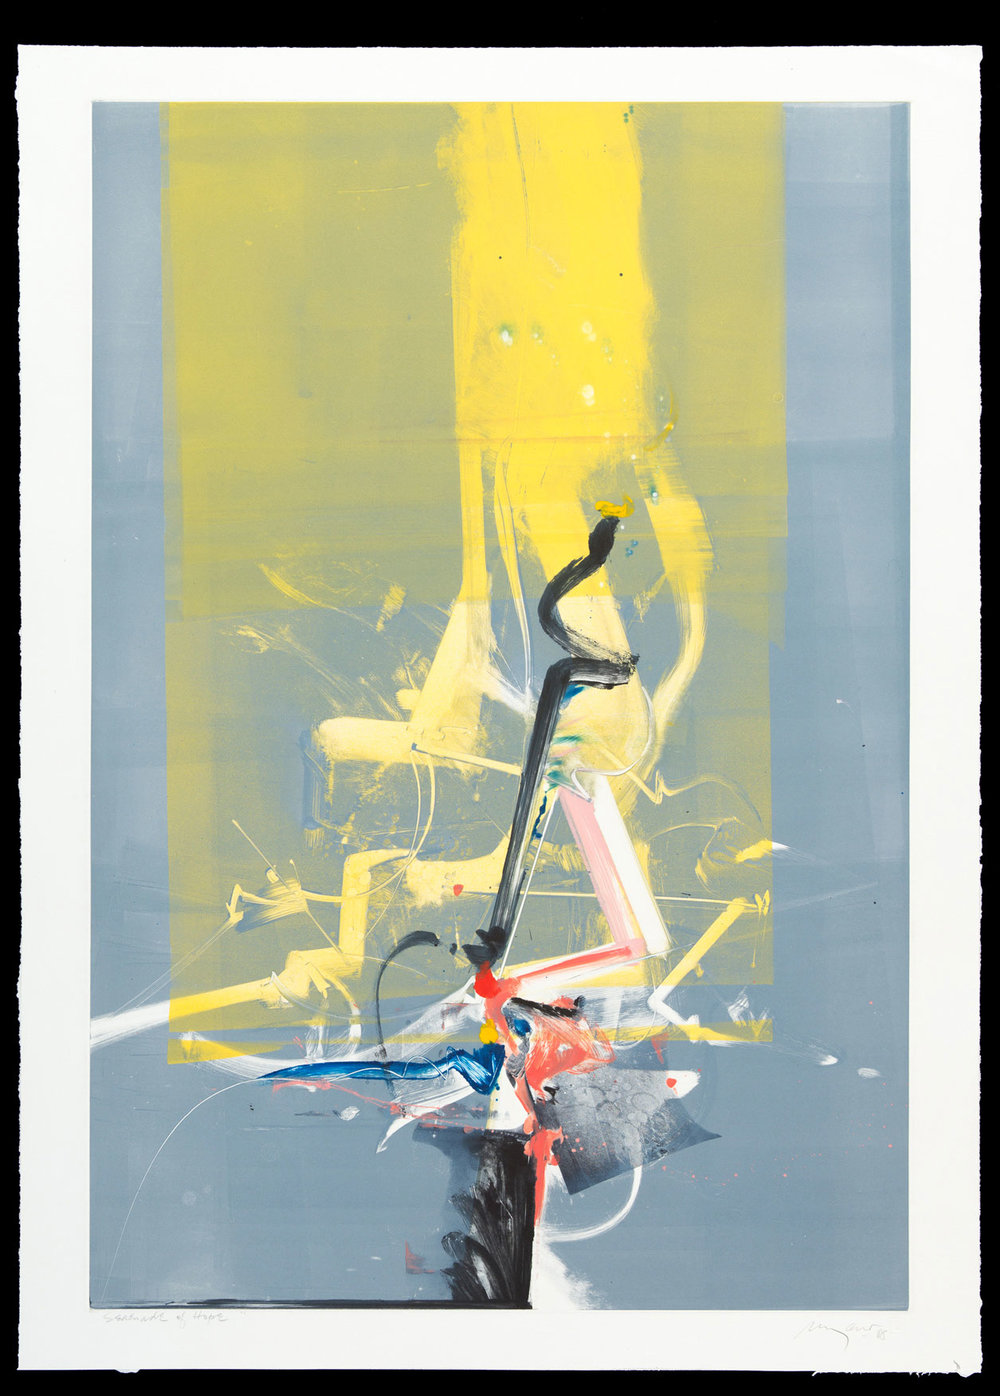 Serenade of Hope , 1988, monotype, 23.5 x 34.5 in.